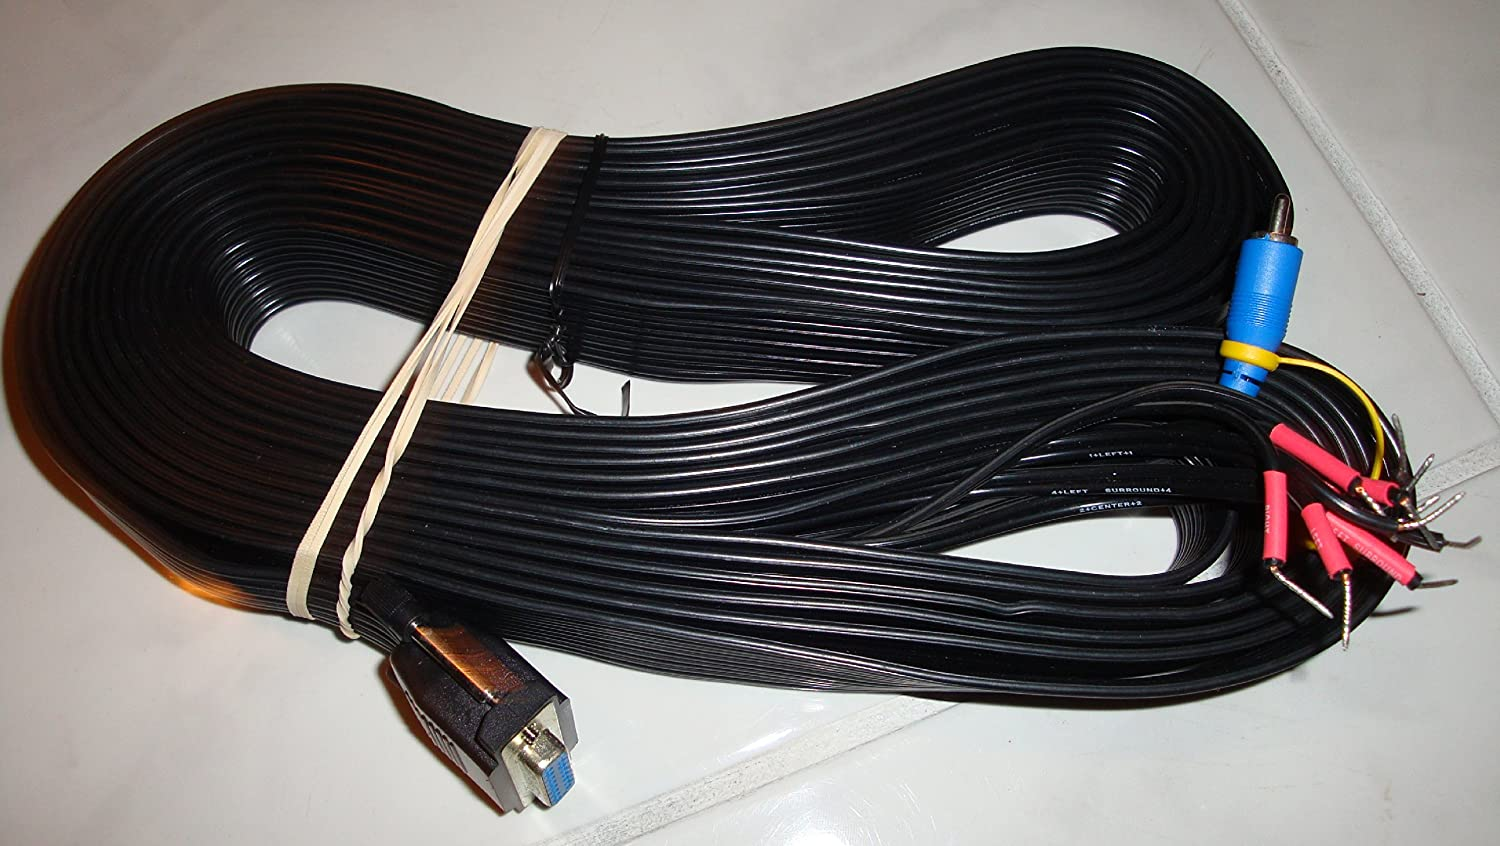 Bose Audio Cable 15 Pin From Subwoofer To Receiver Wiring A Home Theater